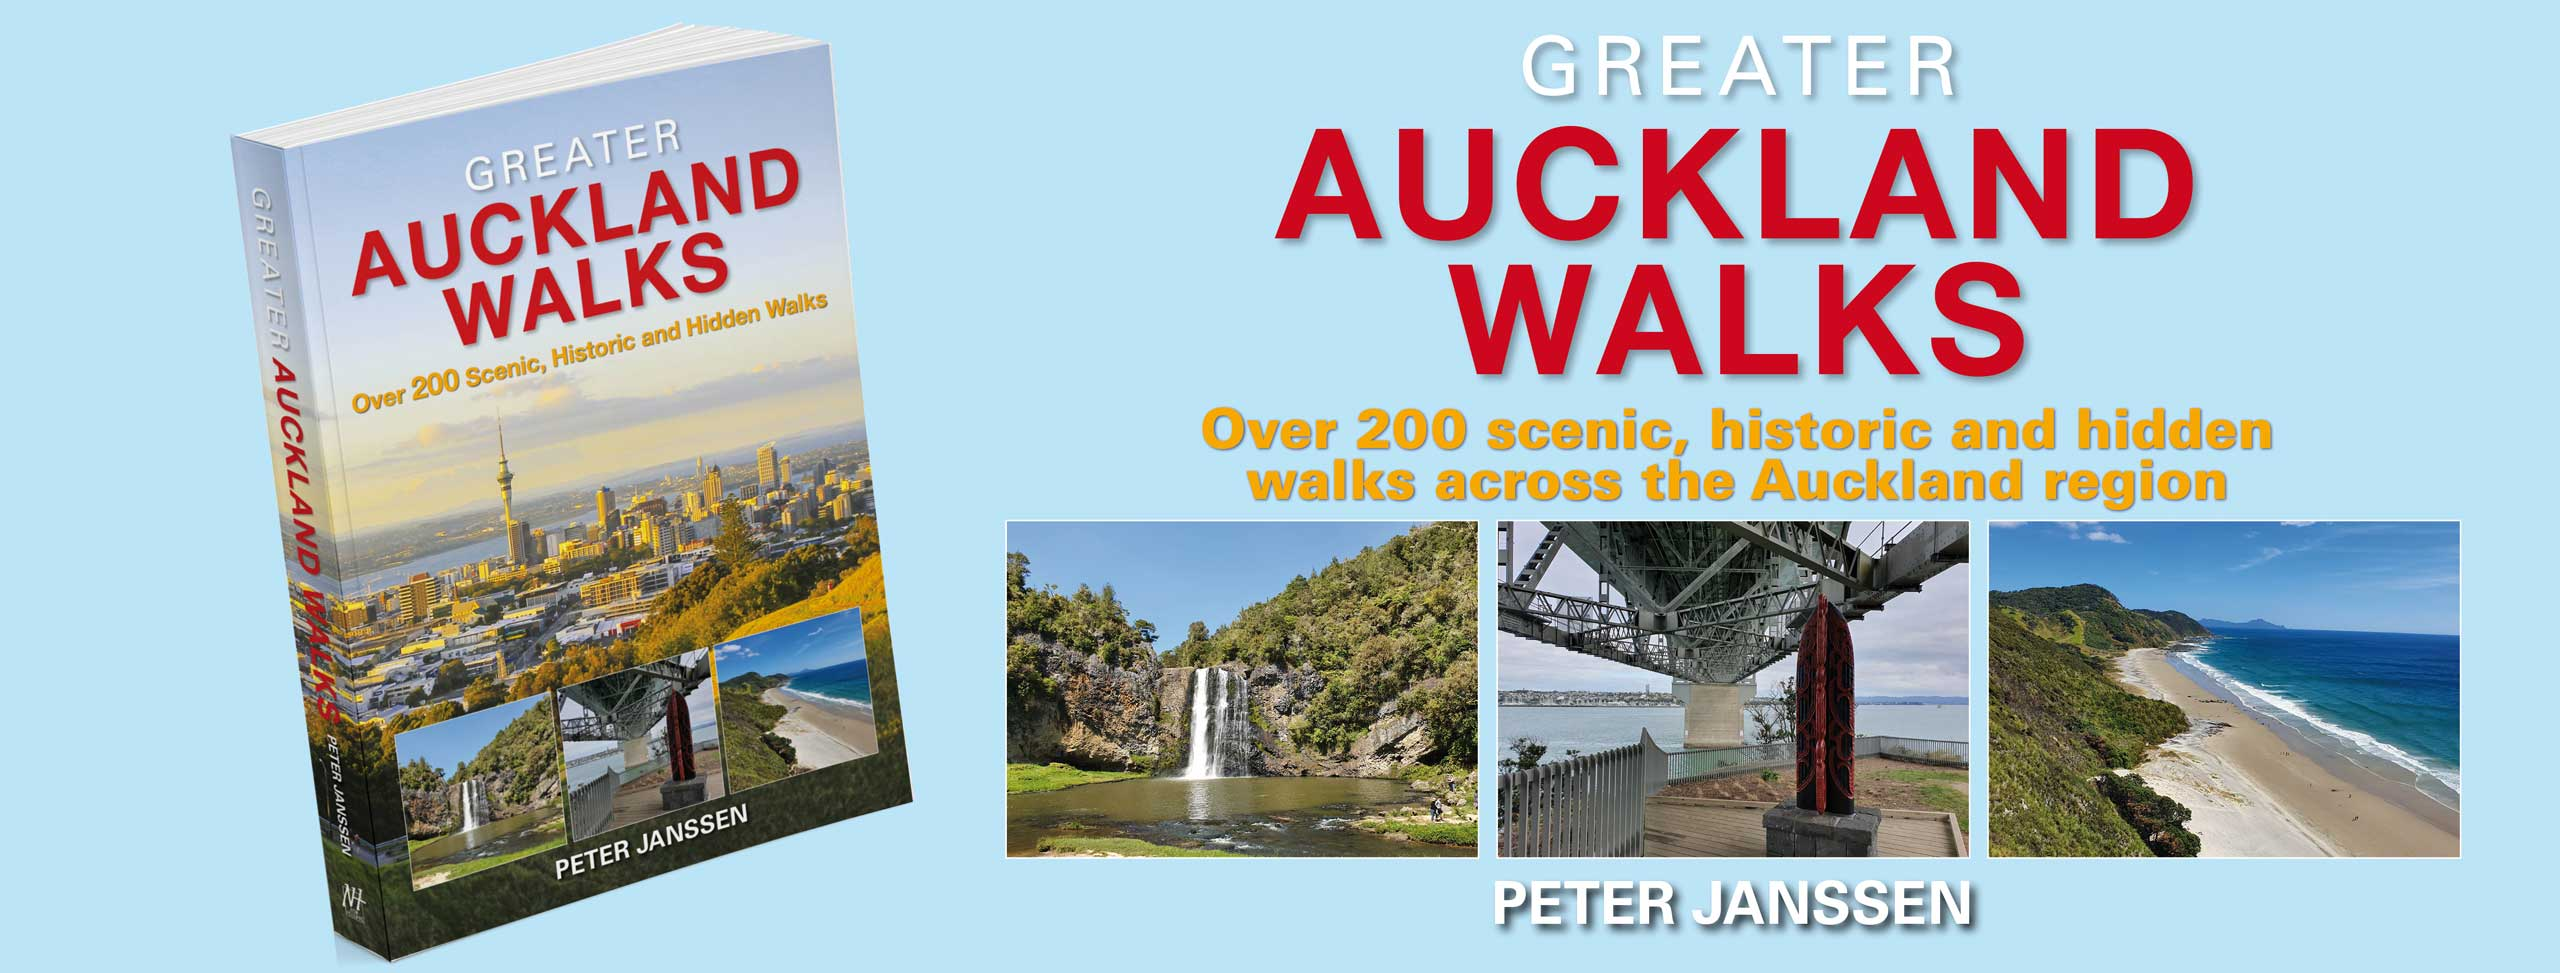 Greater Auckland Walks